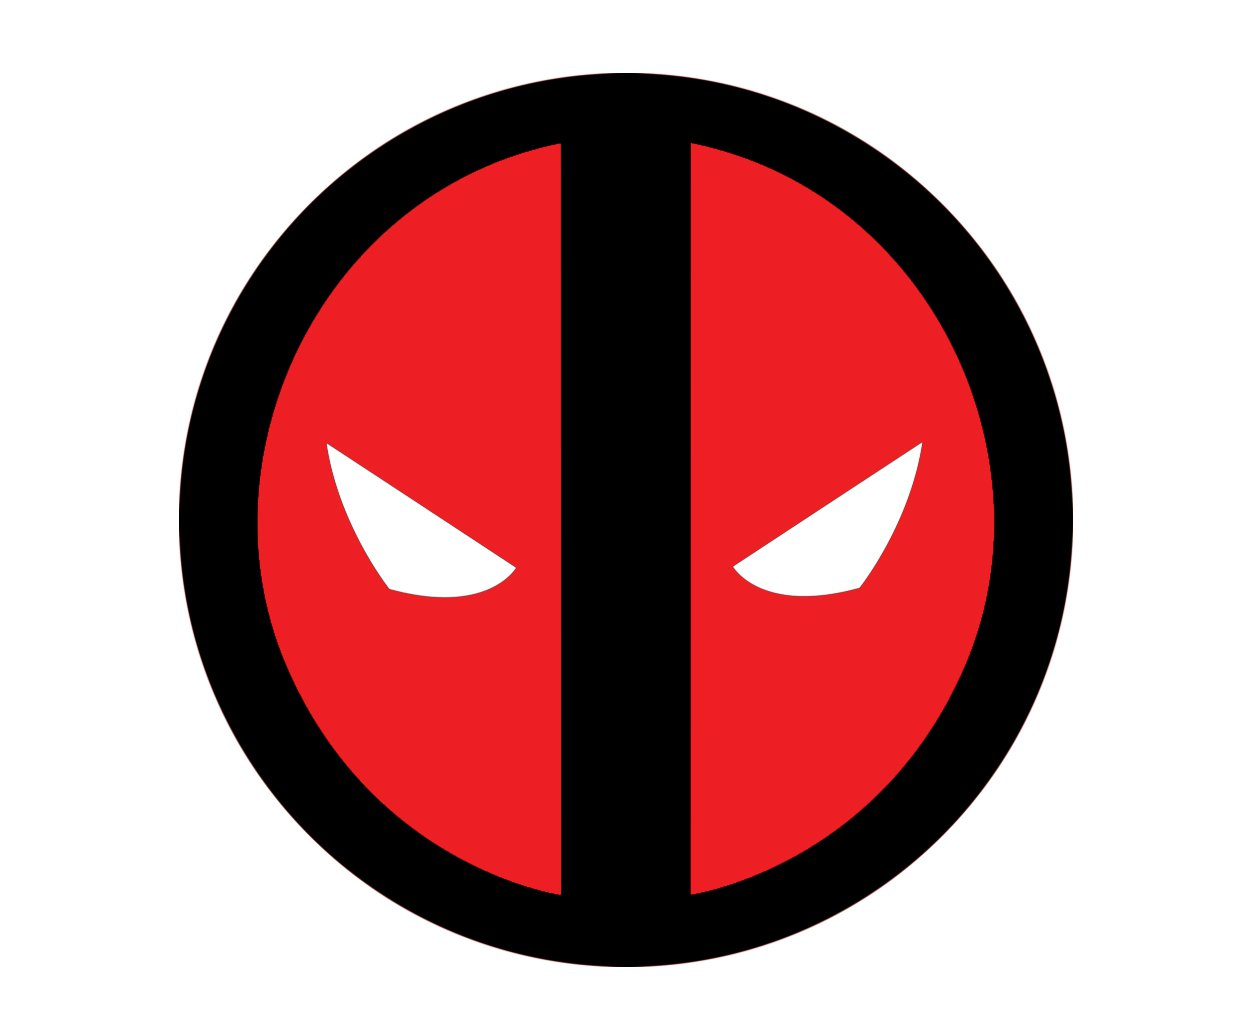 How Much Is Insurance >> Deadpool Logo, symbol meaning, History and Evolution